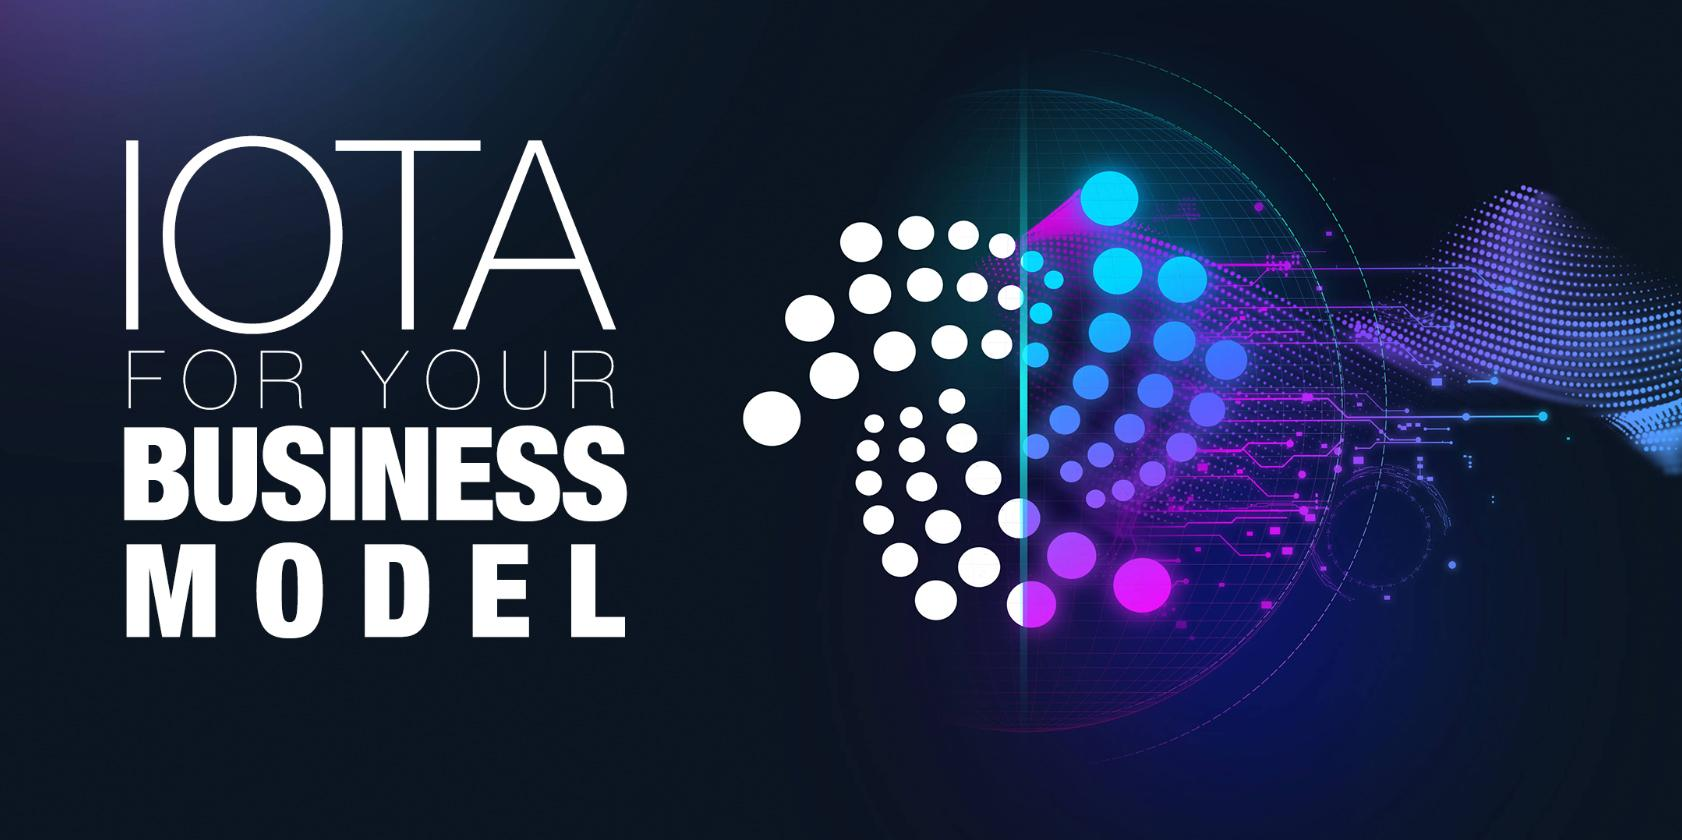 IOTA for your Business Model